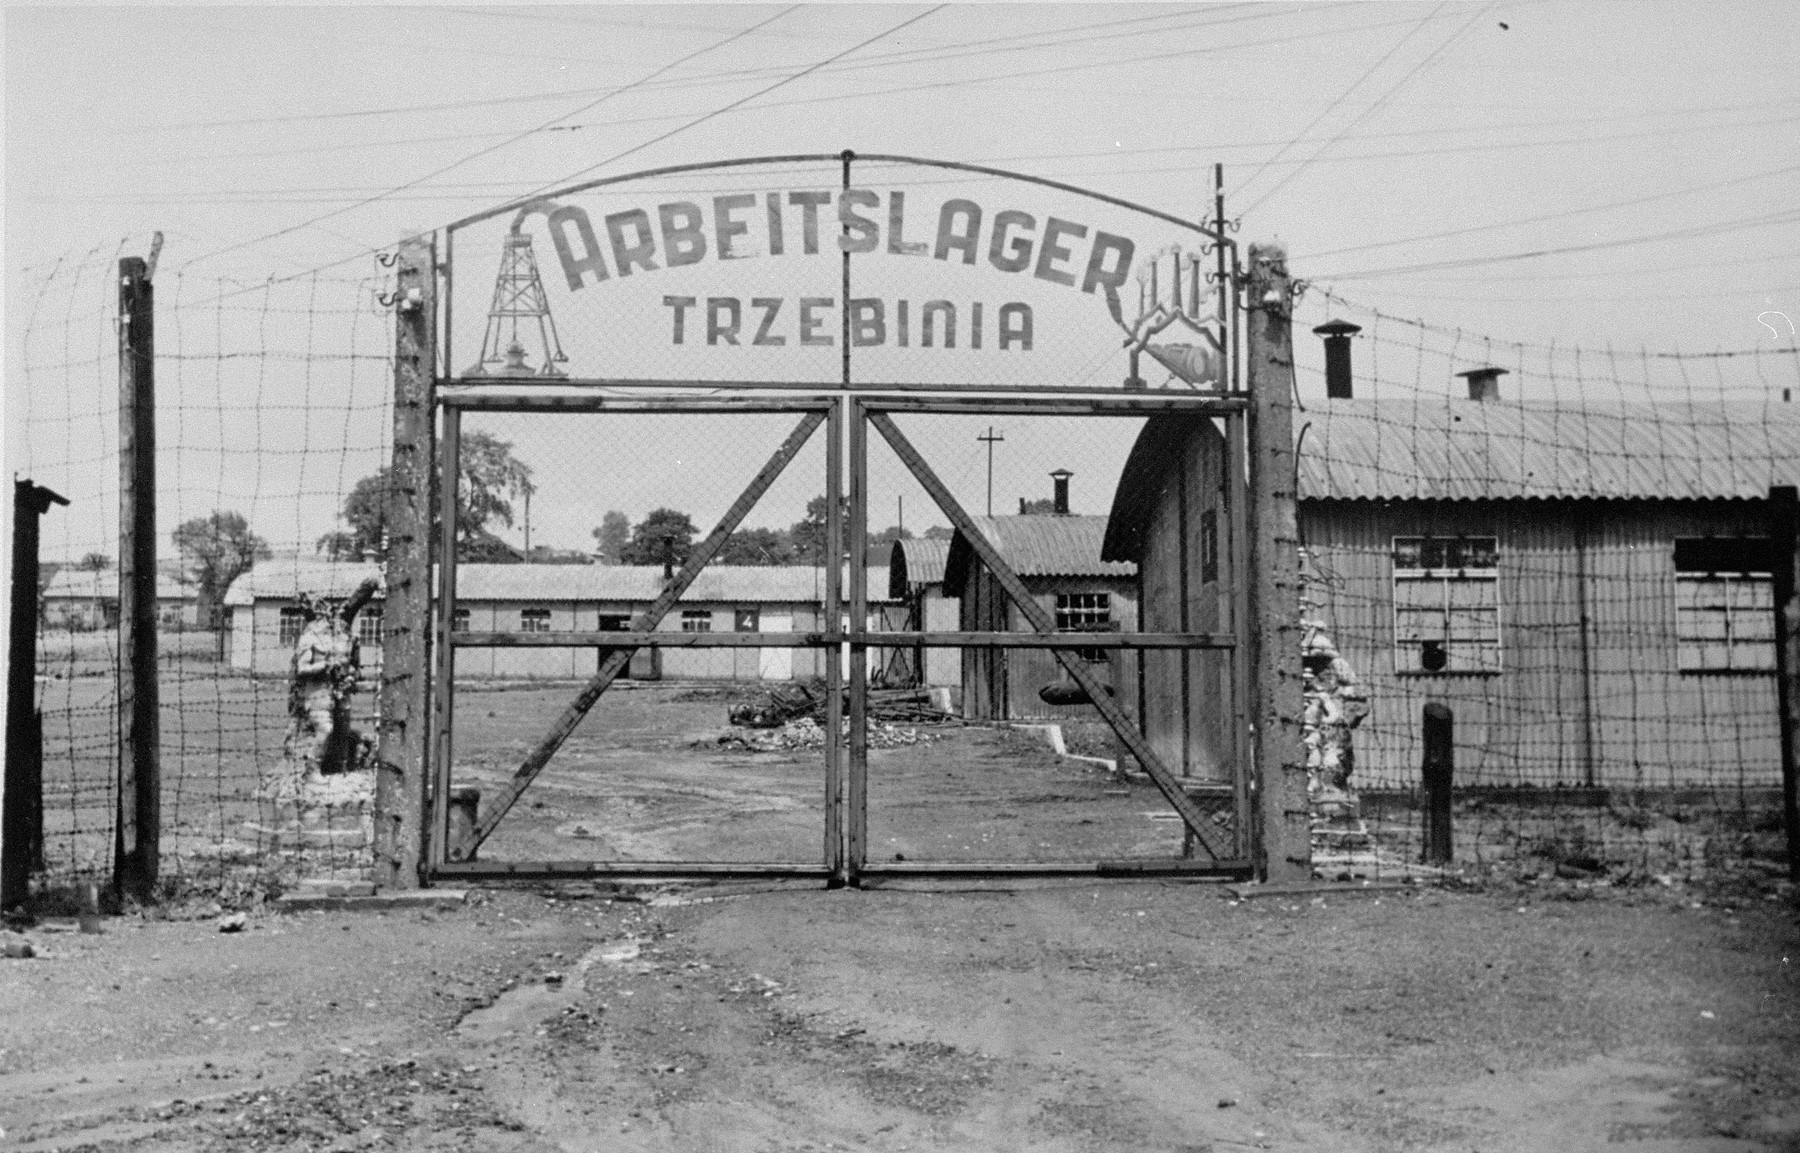 The entrance gate to the Trzebinia sub-camp of Auschwitz.